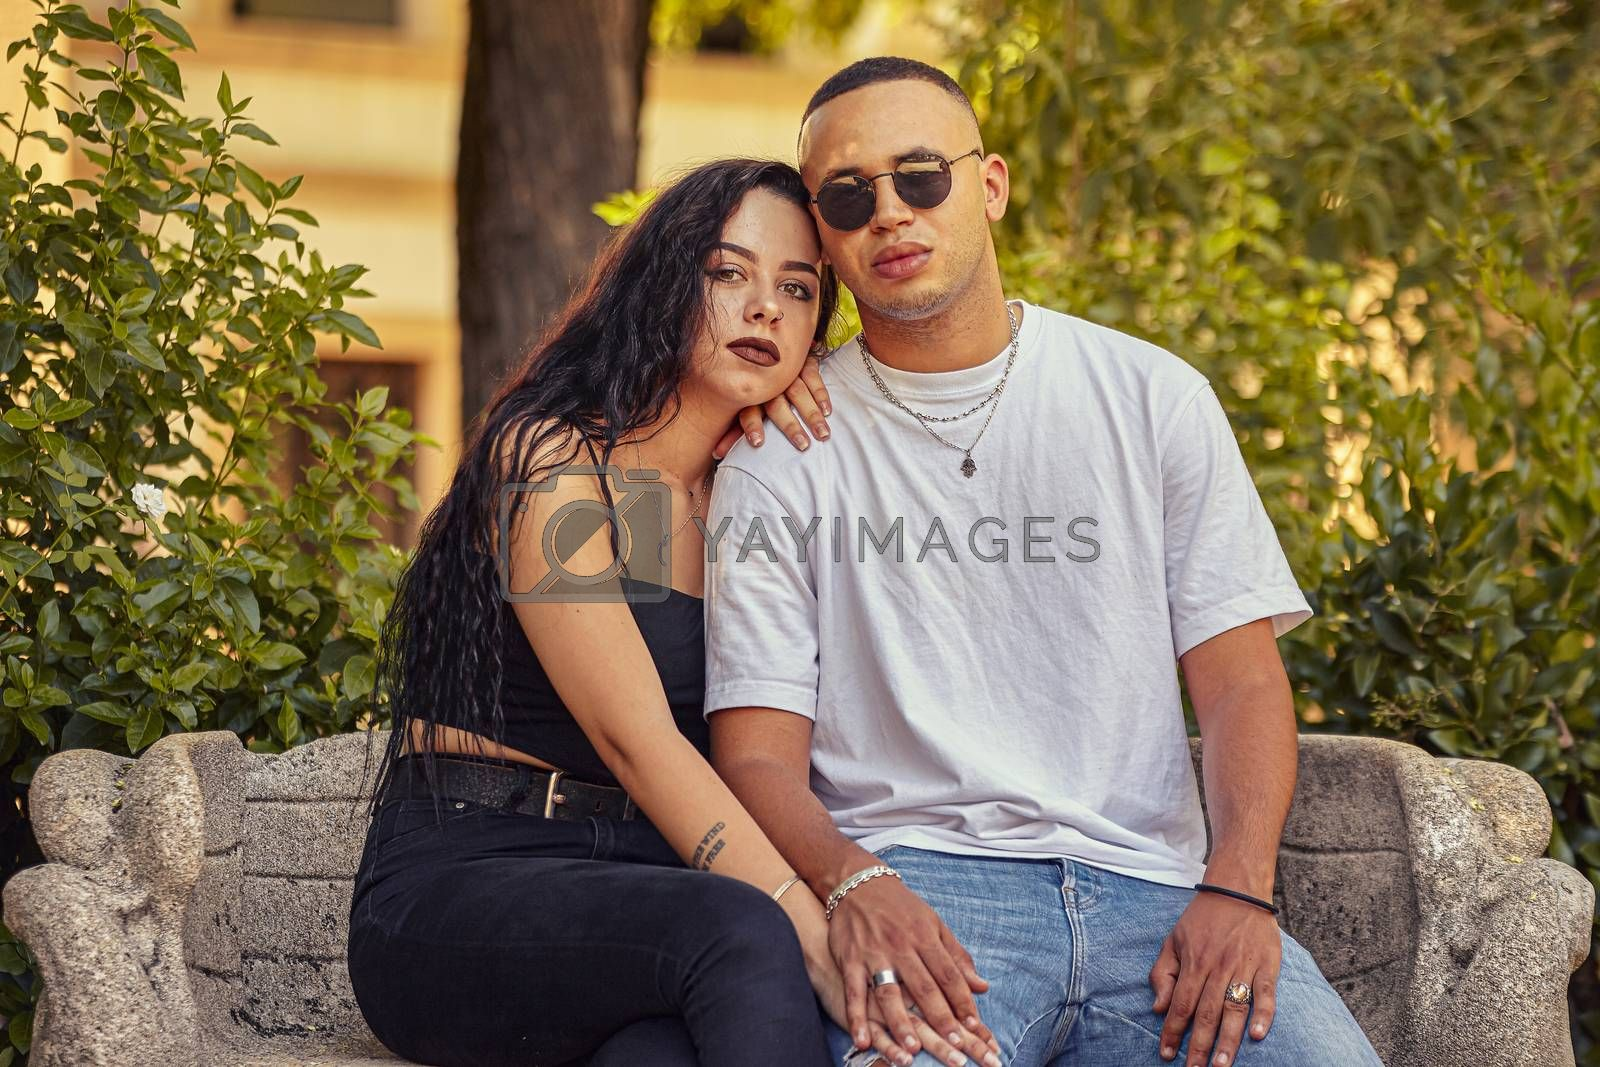 Interracial young couple in Love portrait in a park at sunset